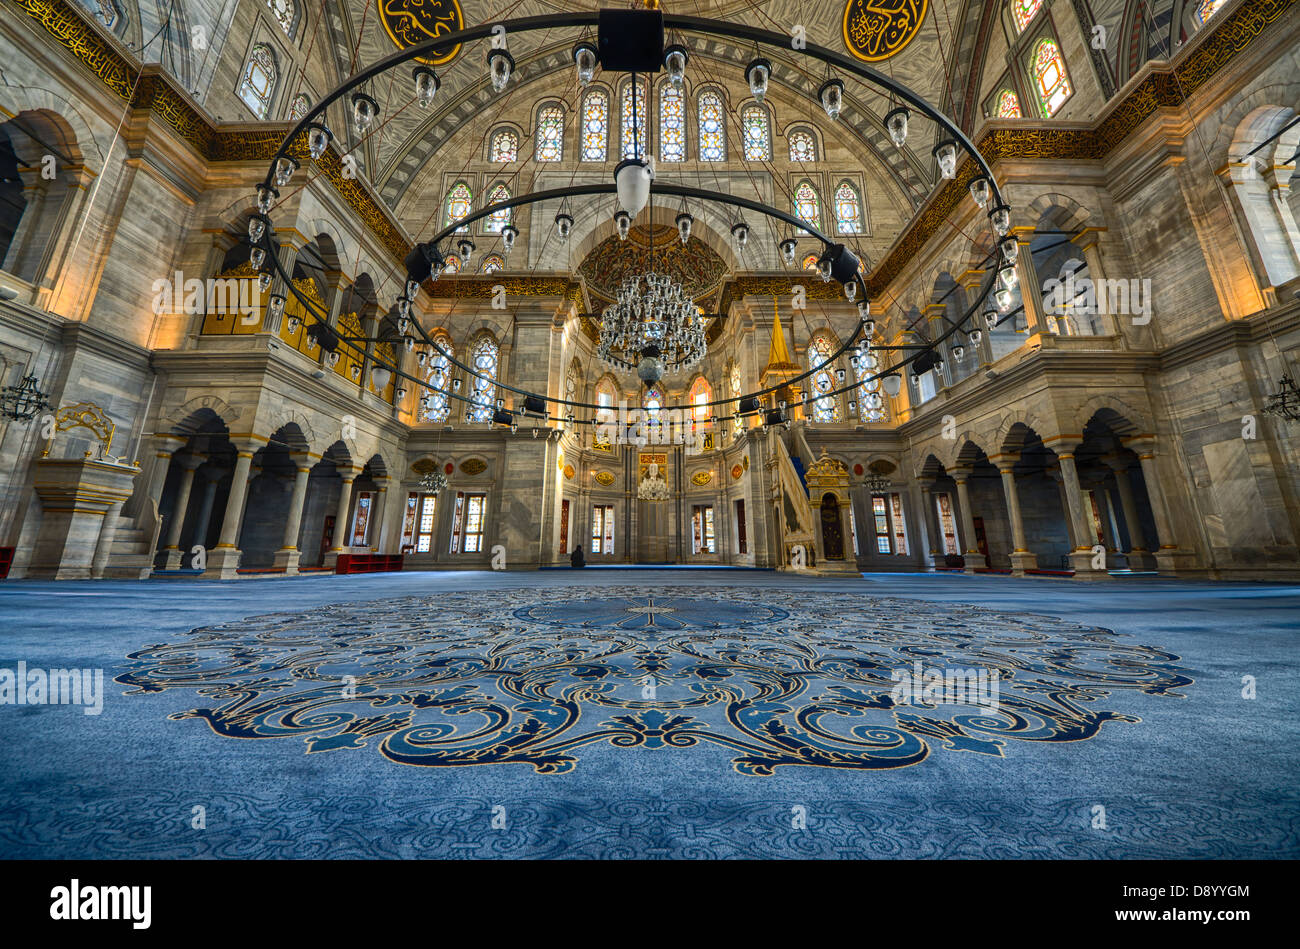 ISTANBUL - DECEMBER 2012: interiors of a Mosque on December 11, 2012. The Mosque is 500 years old - Stock Image